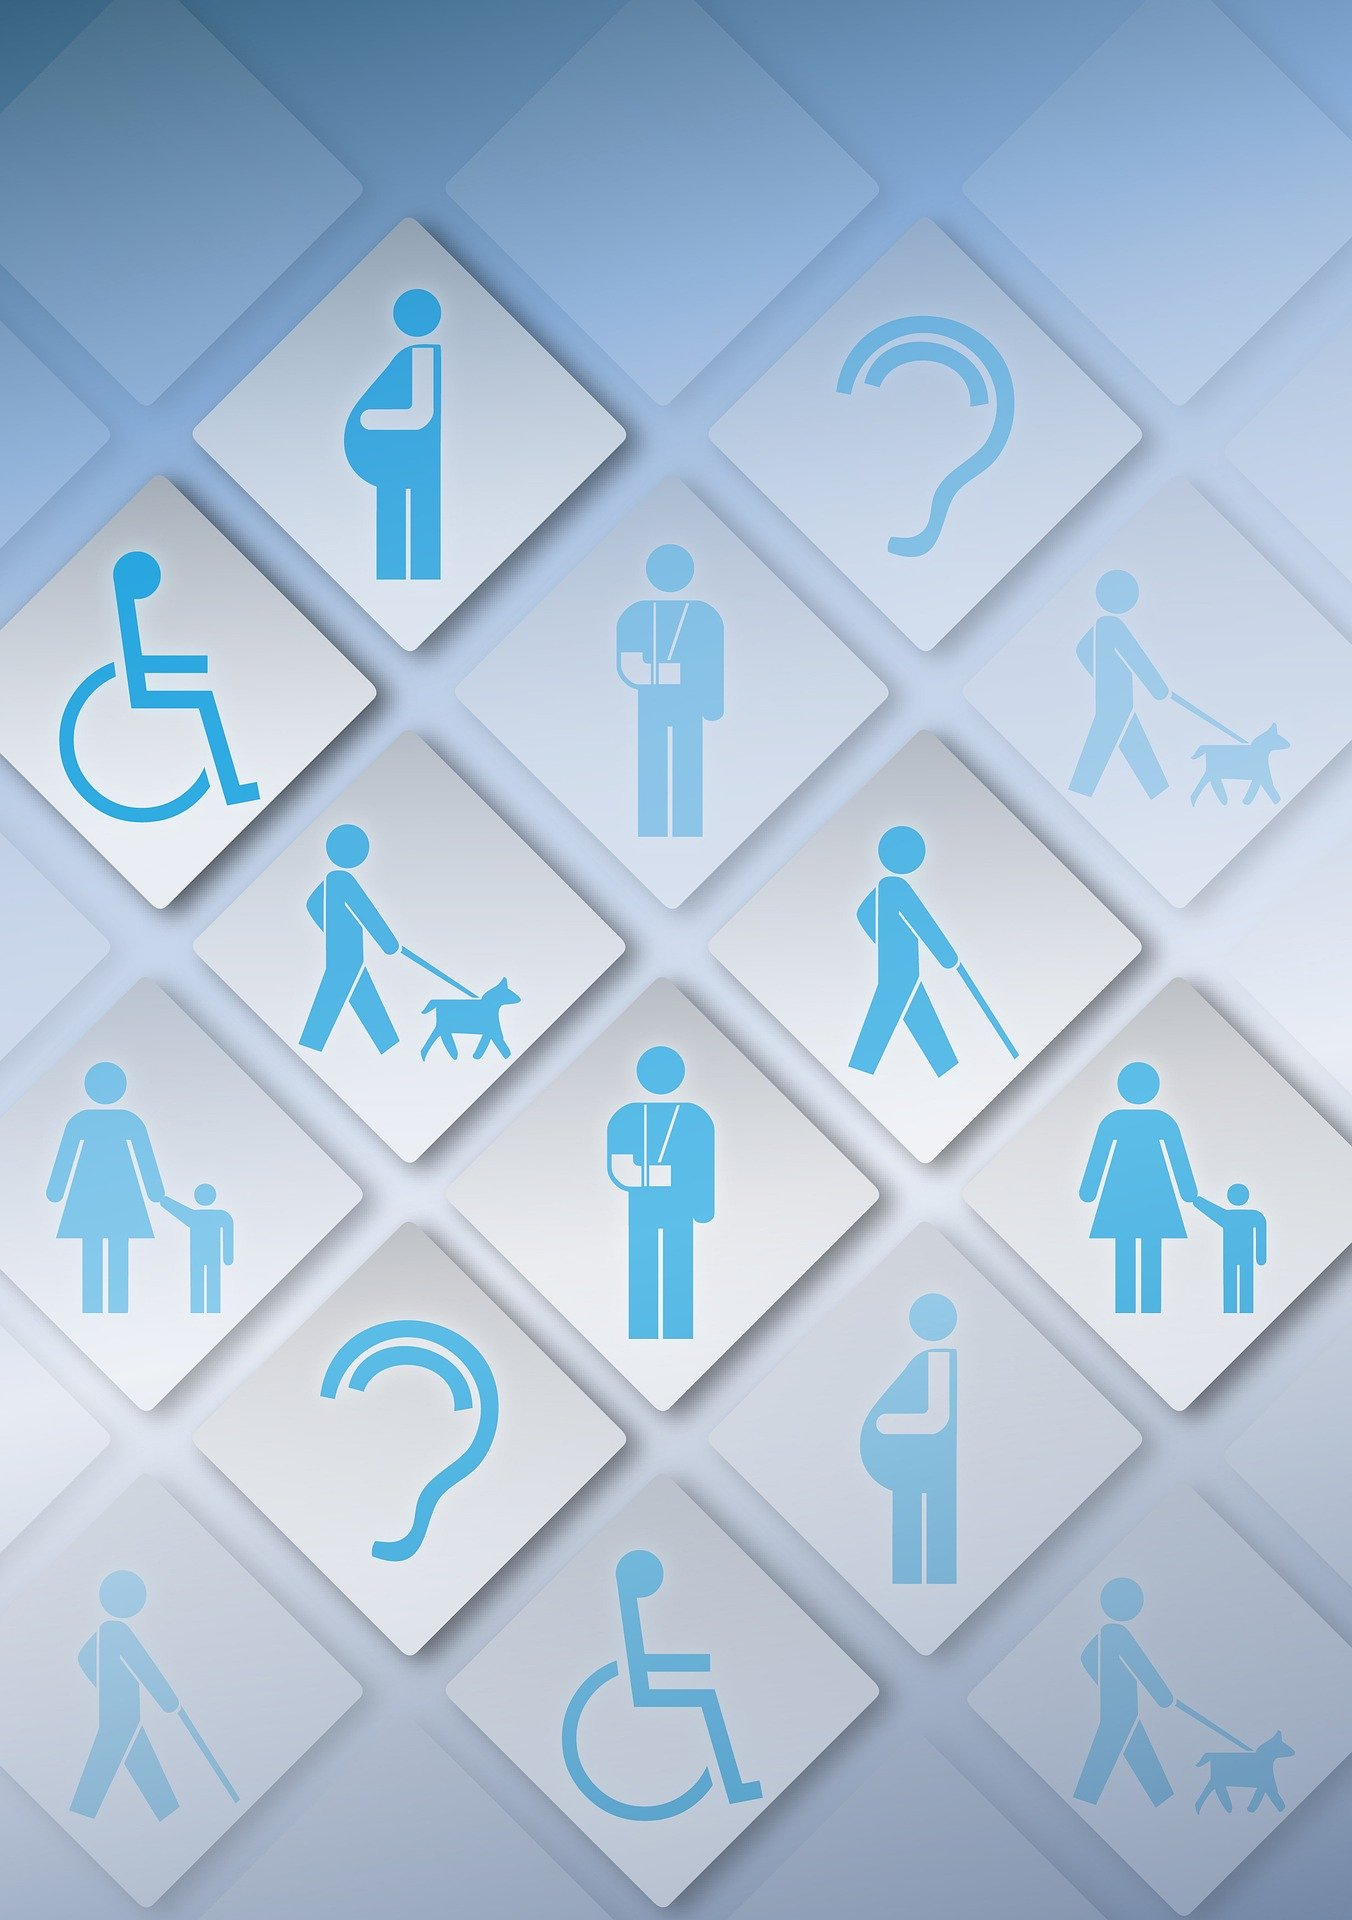 A visual diagram of all variations of signs for accessibility needs such as a wheelchair, pregnant woman, a blind person with a dog, an ear, and more.